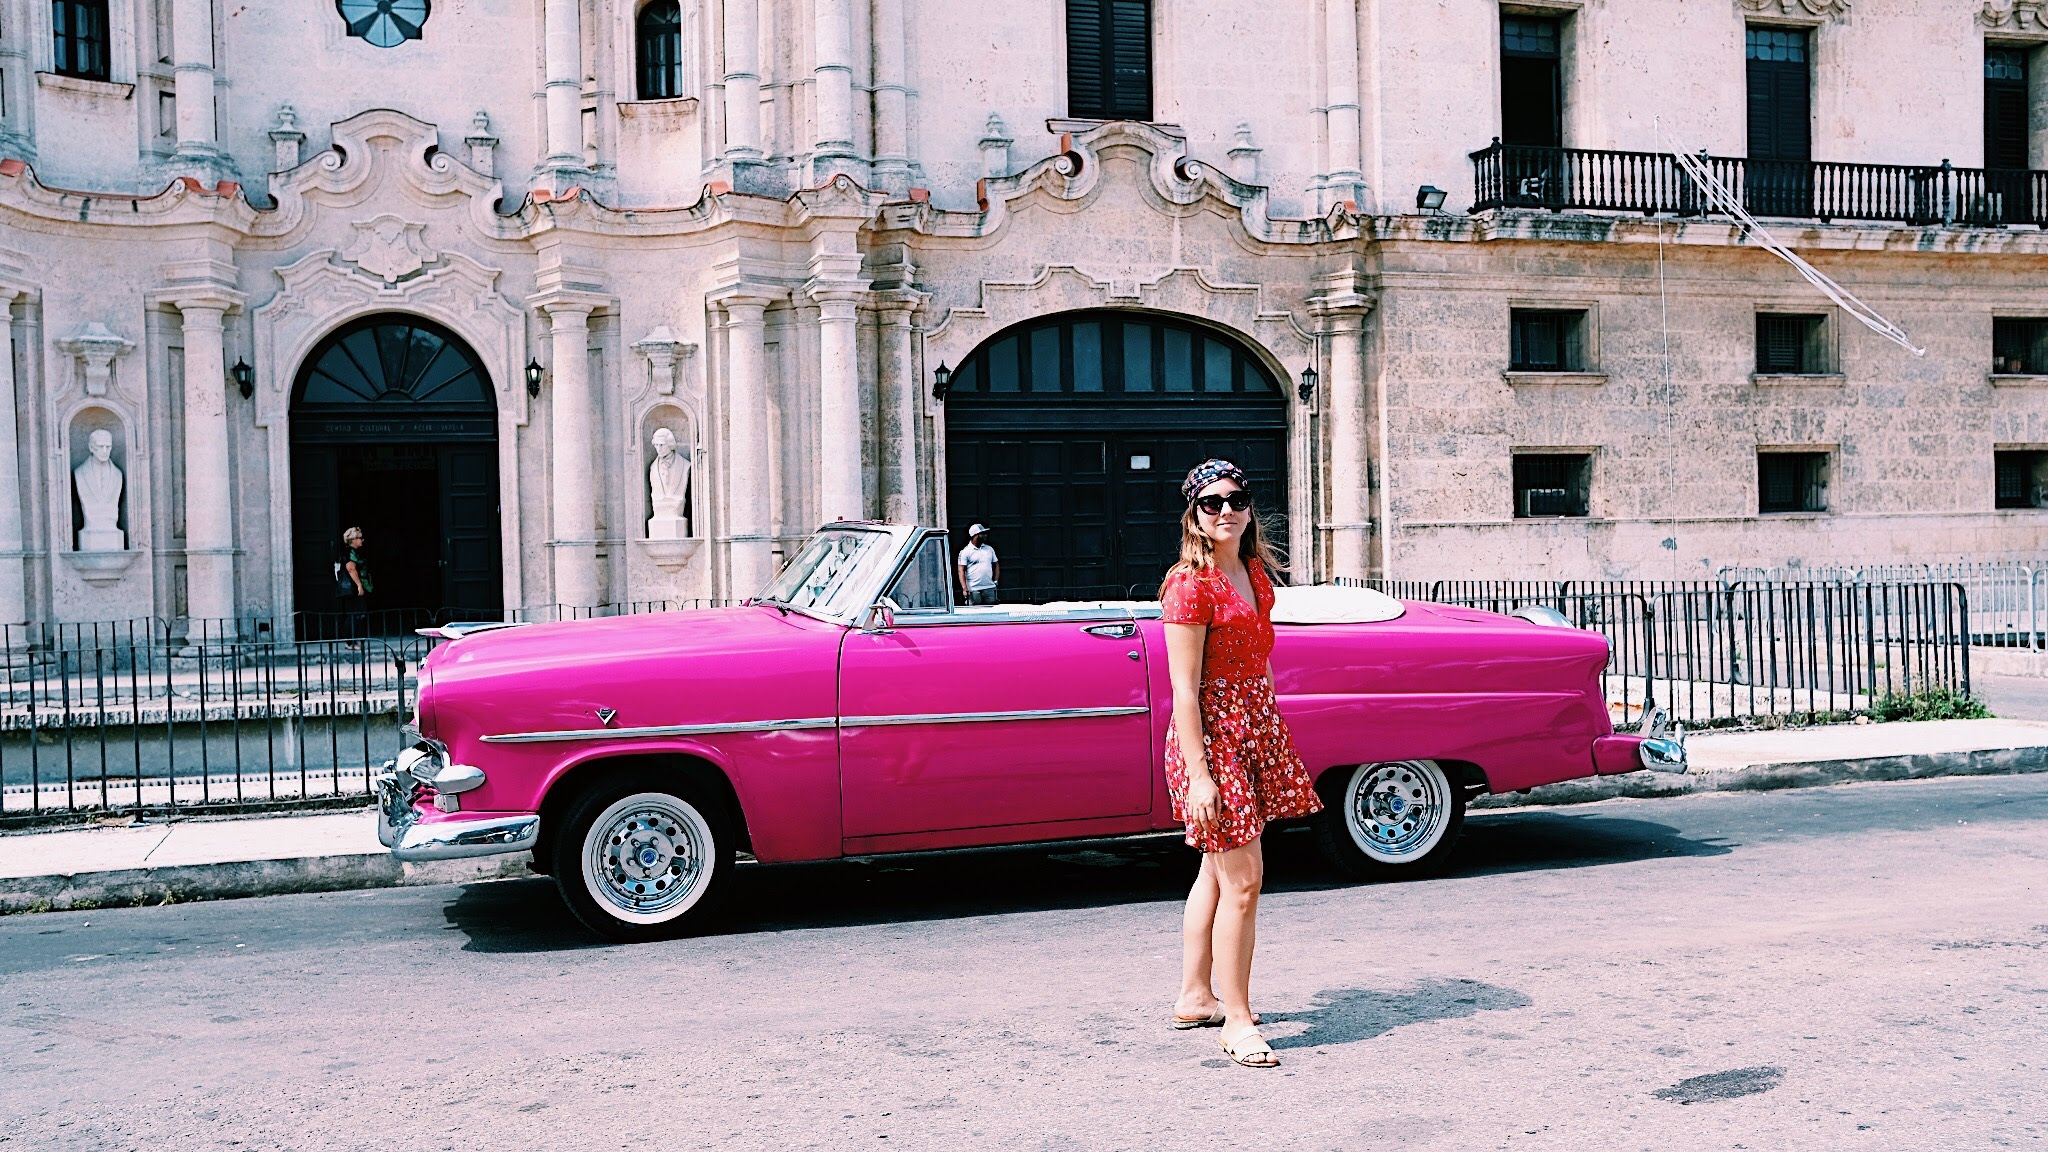 Among the vintage cares in Havana, Cuba